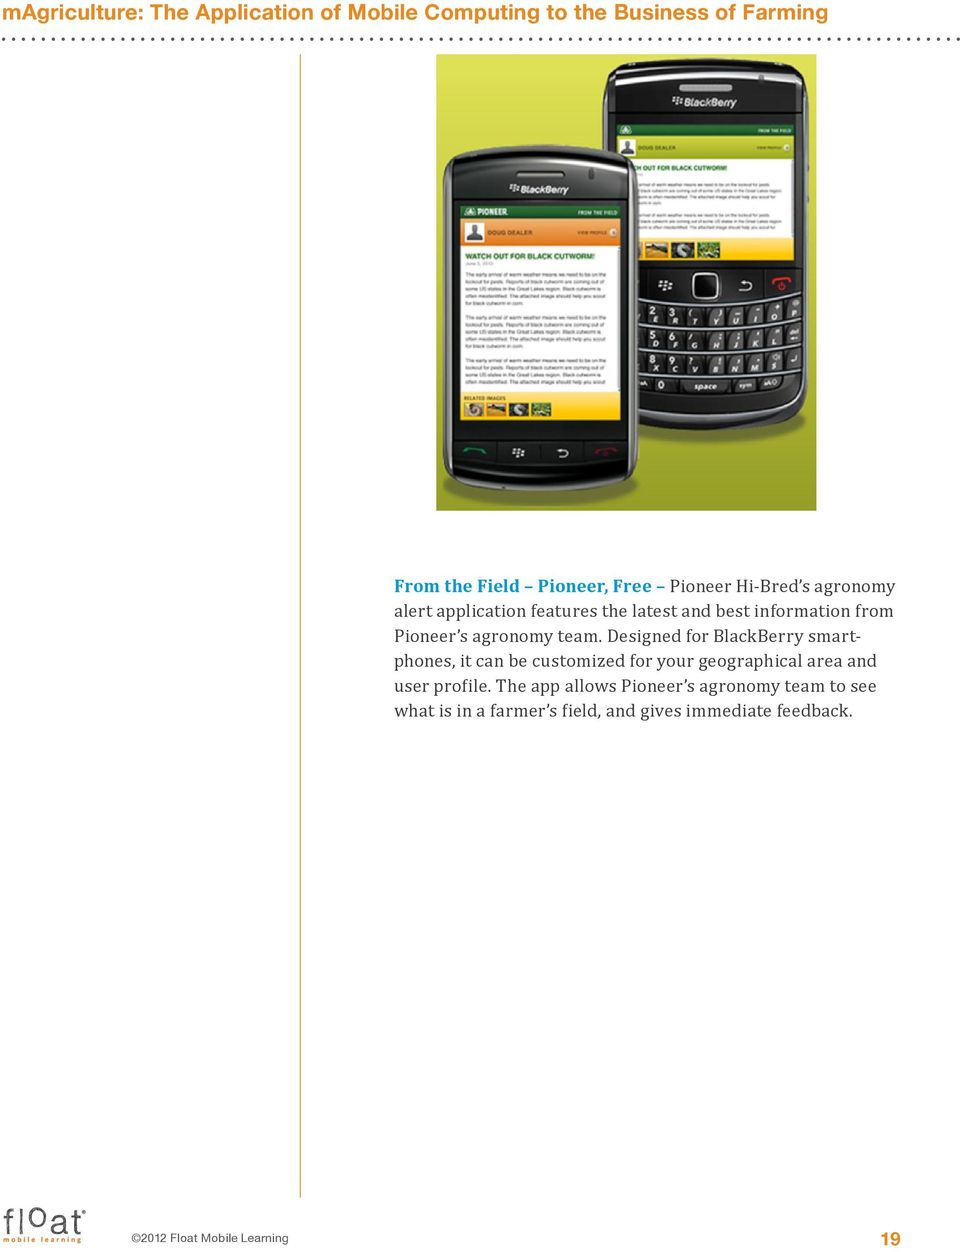 Designed for BlackBerry smartphones, it can be customized for your geographical area and